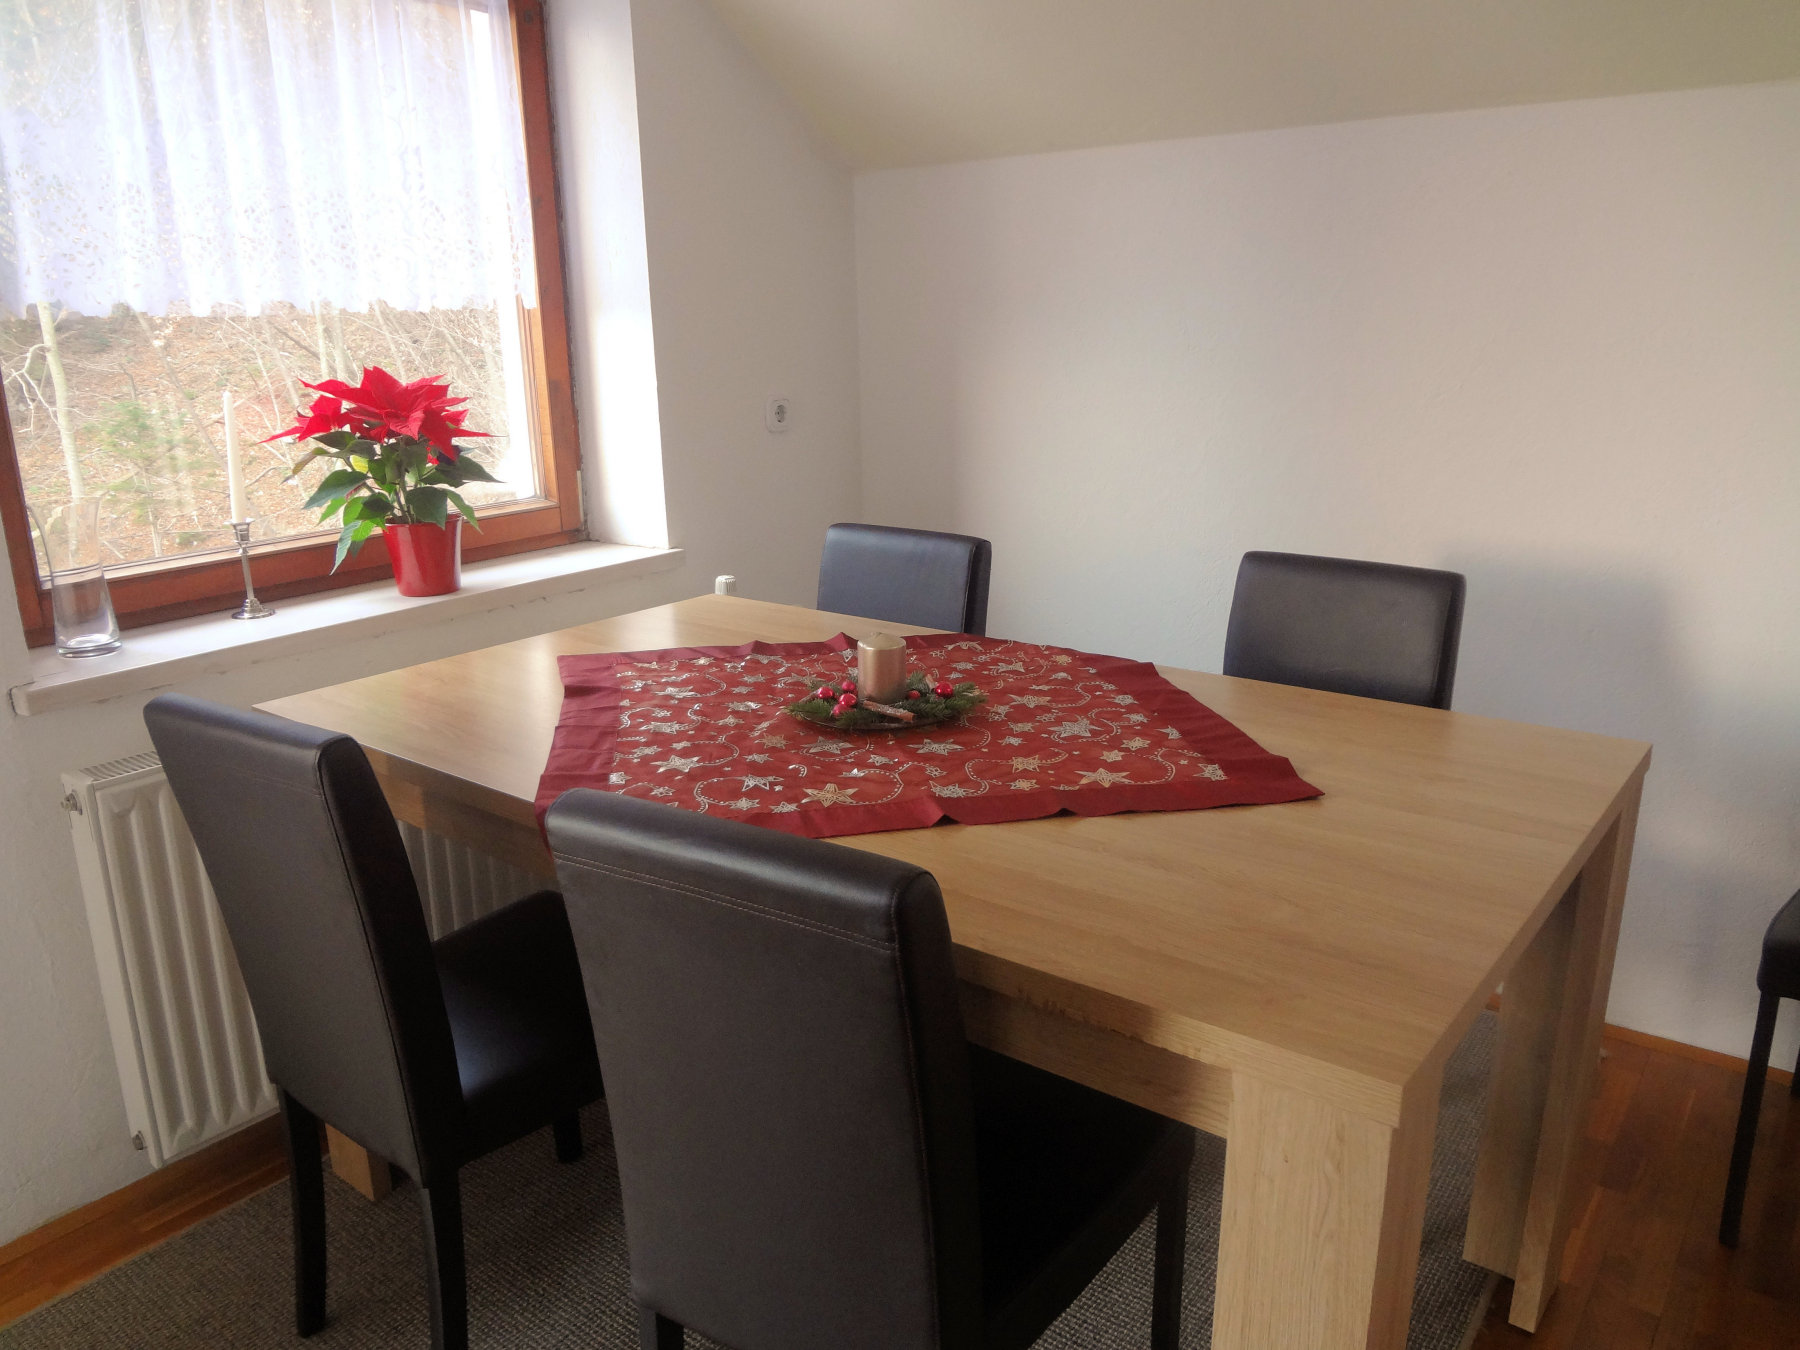 Fine Stay Apartment in Slovenia with some holiday decorations and a poinsettia